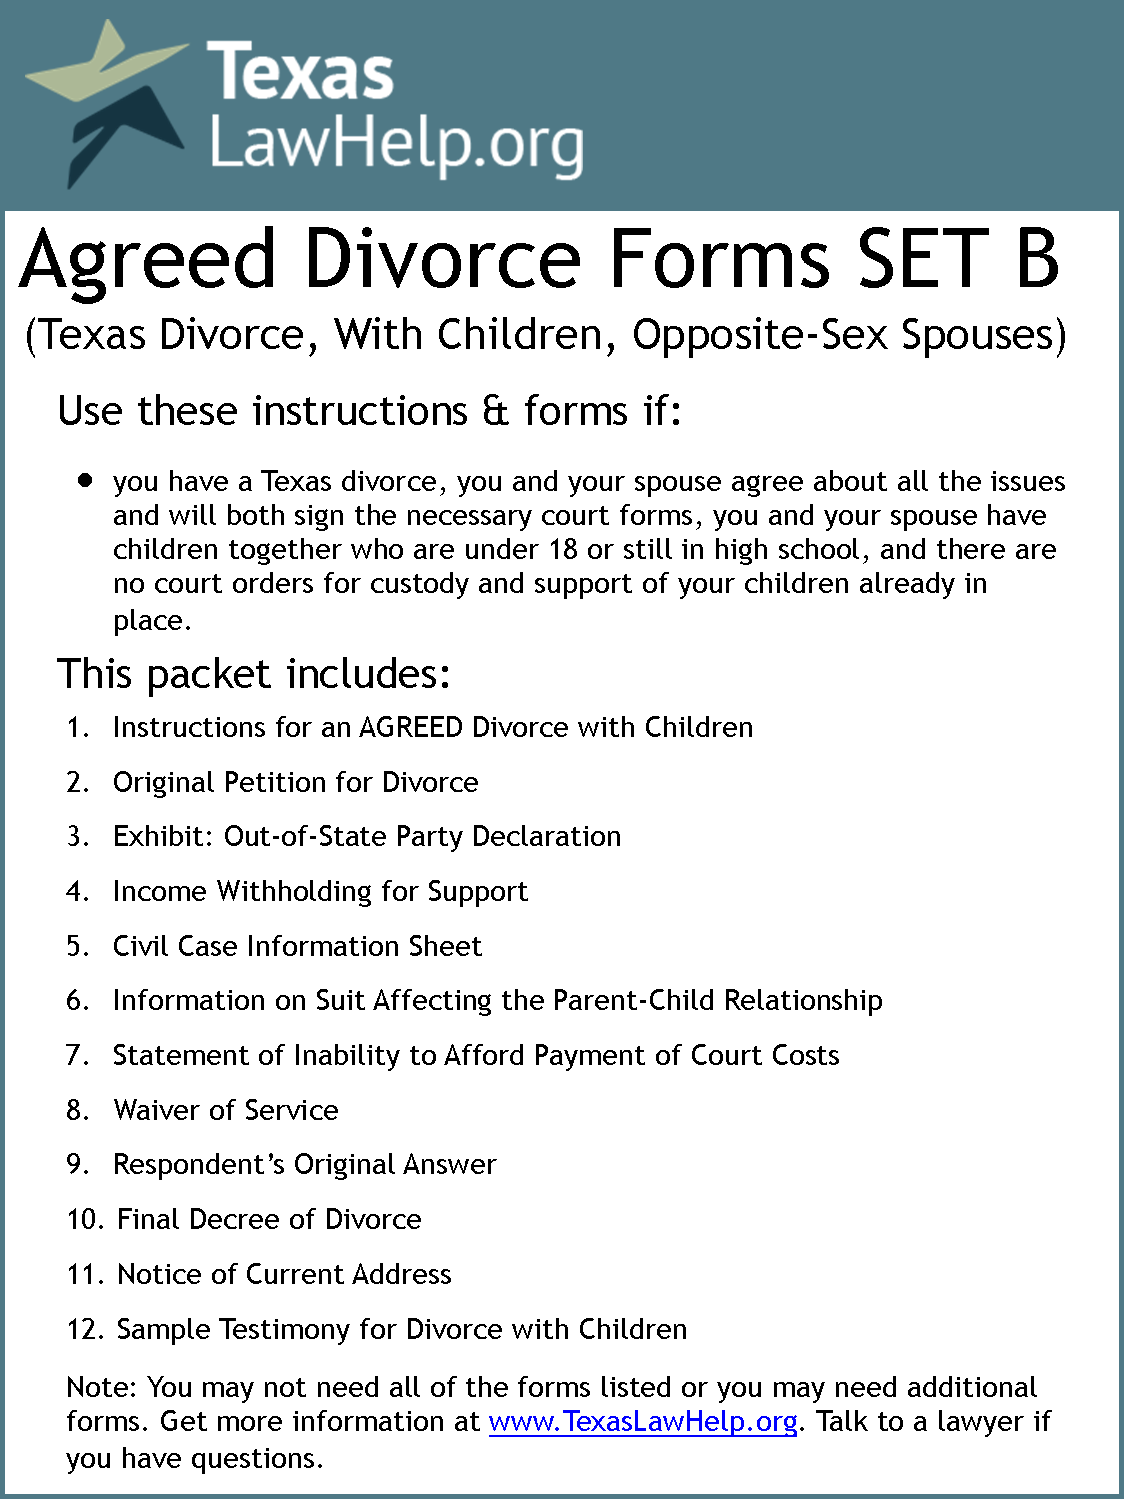 Click to view the Divorce Set B - Agreed packet from TexasLawHelp